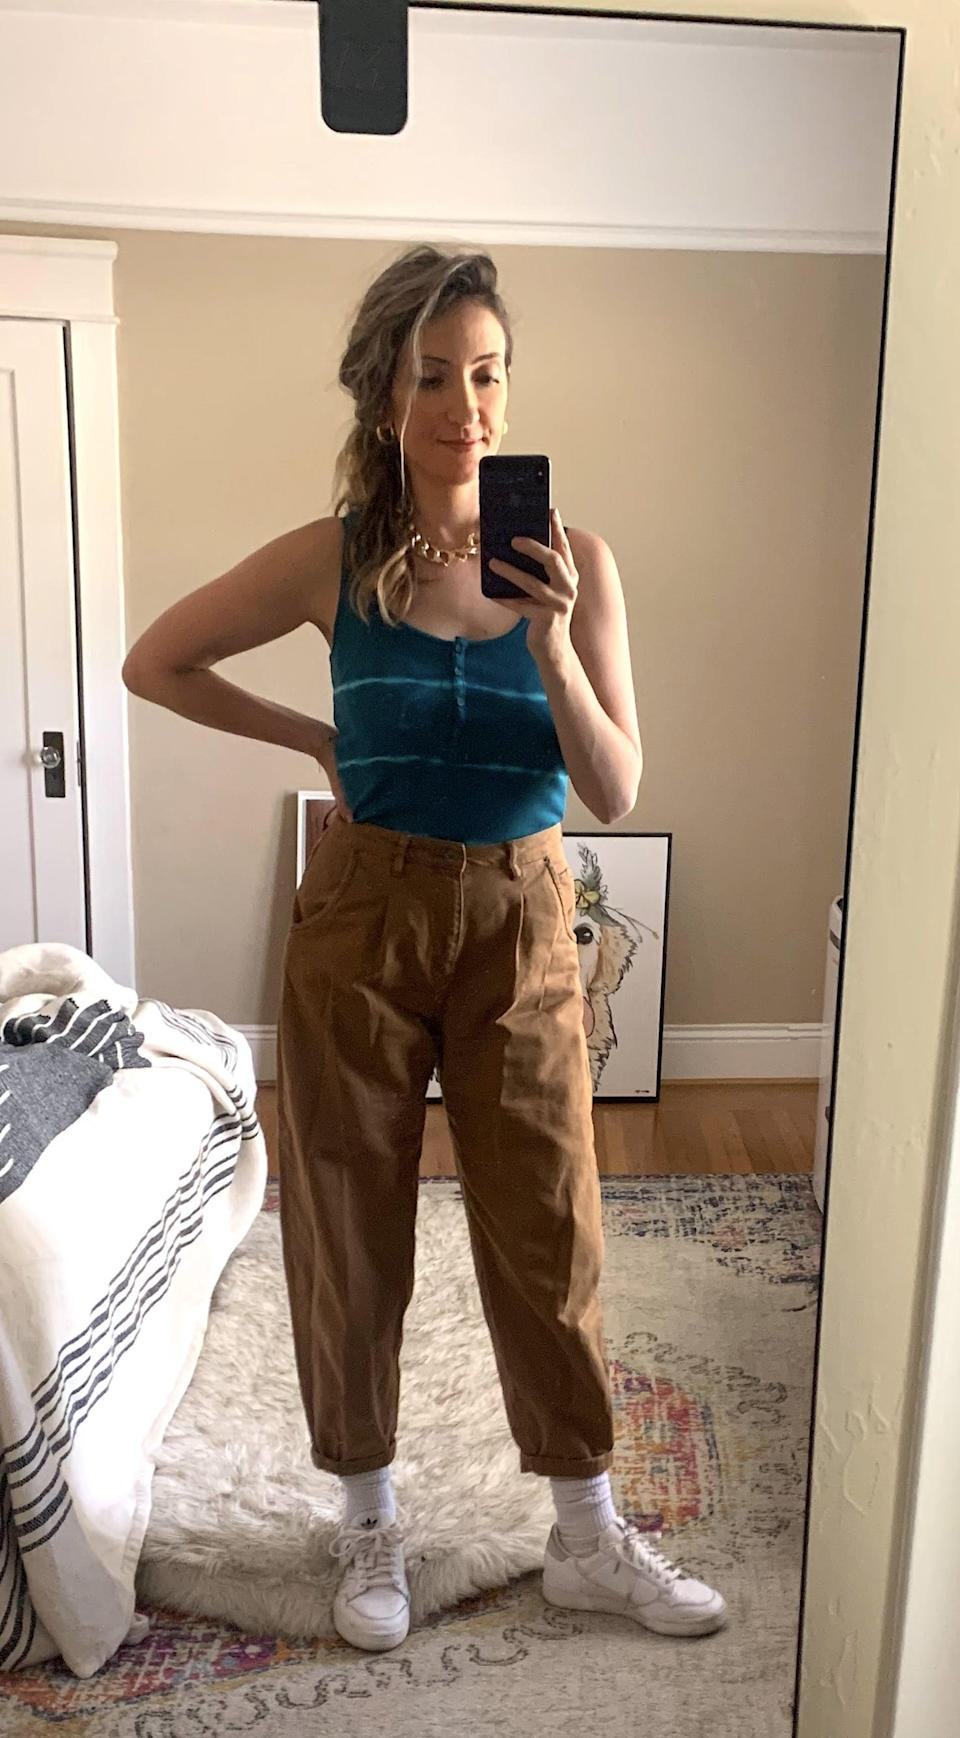 """<p><strong>The item:</strong> <span>Old Navy Fitted Rib-Knit Henley Tank</span> (Sold Out) </p><p><strong>What our editor said</strong>: """"When it arrived I immediately tried it on with my favorite mom jeans, and the fit was perfect. The tank is soft and flattering without being too tight - some ribbed tanks can feel too restricting, as though I'm wearing a sports bra.I loved that there is just enough stretch in the fabric (it's made of five percent spandex)."""" - RB</p> <p>If you want to read more, here is the <a href=""""http://www.popsugar.com/fashion/best-tie-dye-tank-top-at-old-navy-47588994"""" class=""""link rapid-noclick-resp"""" rel=""""nofollow noopener"""" target=""""_blank"""" data-ylk=""""slk:complete review."""">complete review.</a></p>"""